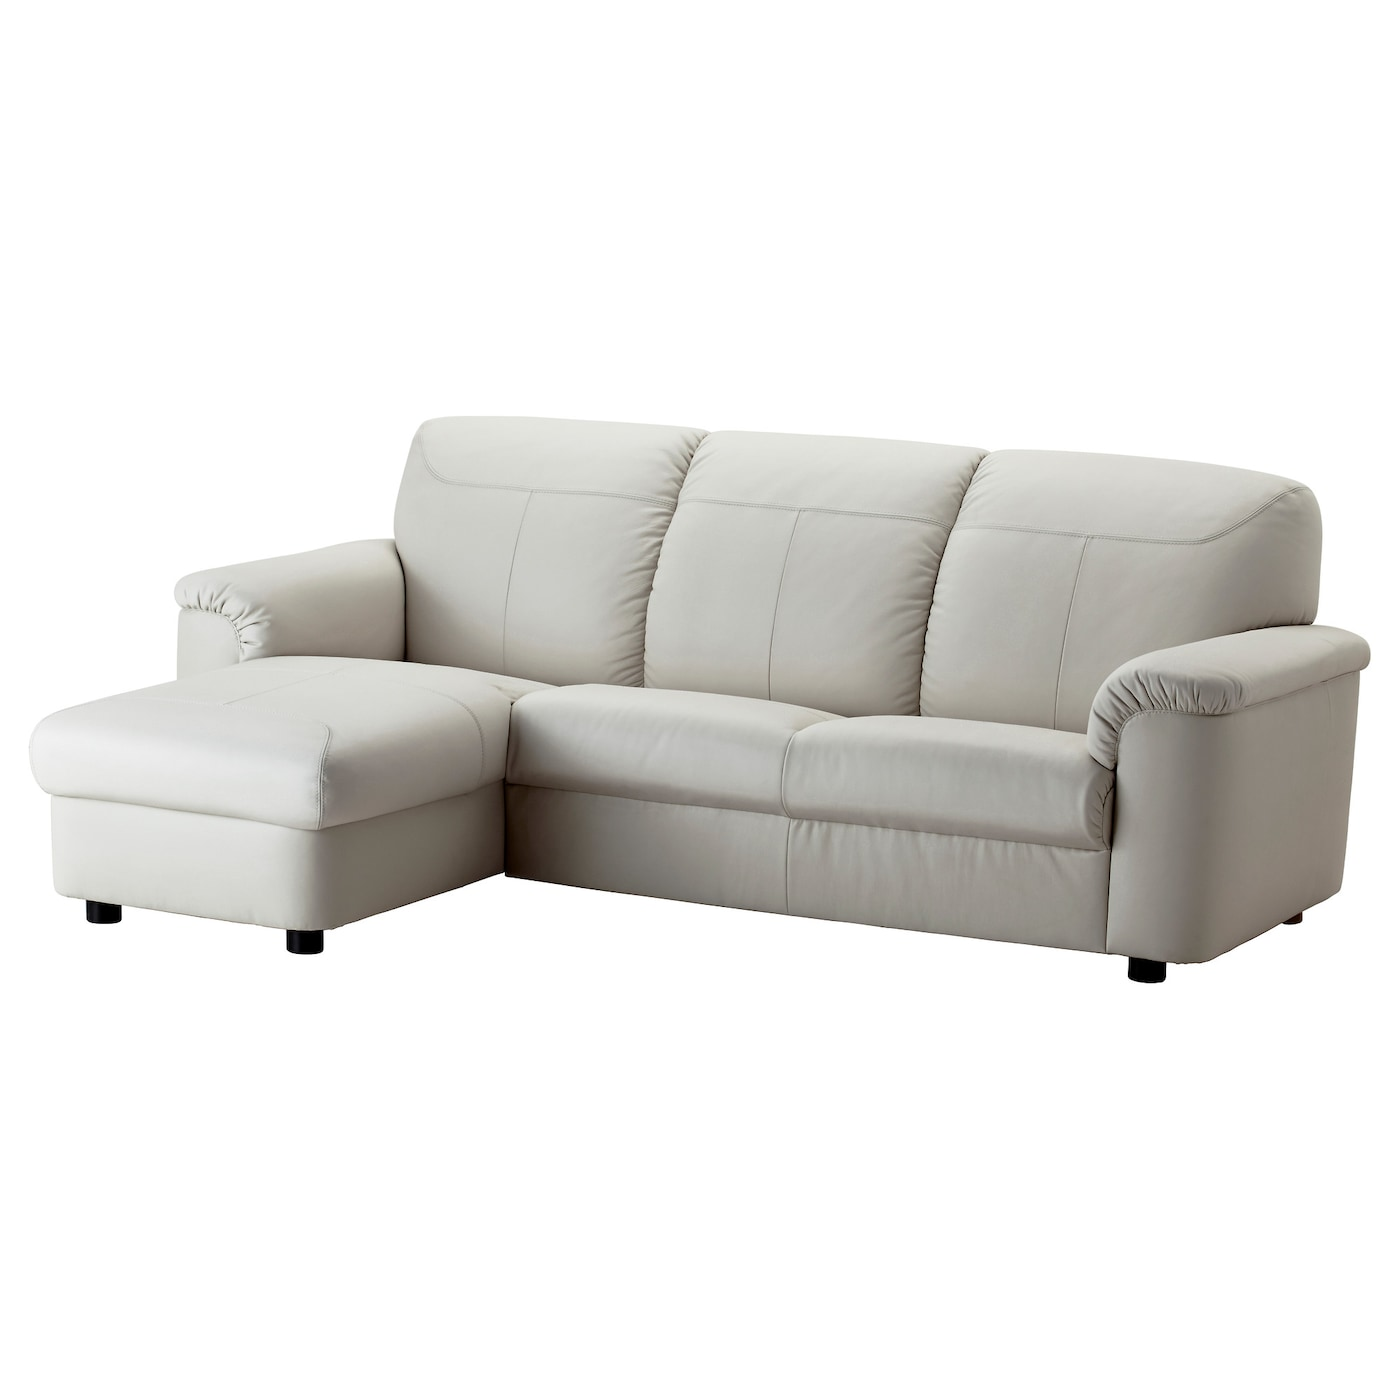 Ikea White Leather Couch Sofas: TIMSFORS Two-seat Sofa With Chaise Longue Mjuk/kimstad Off